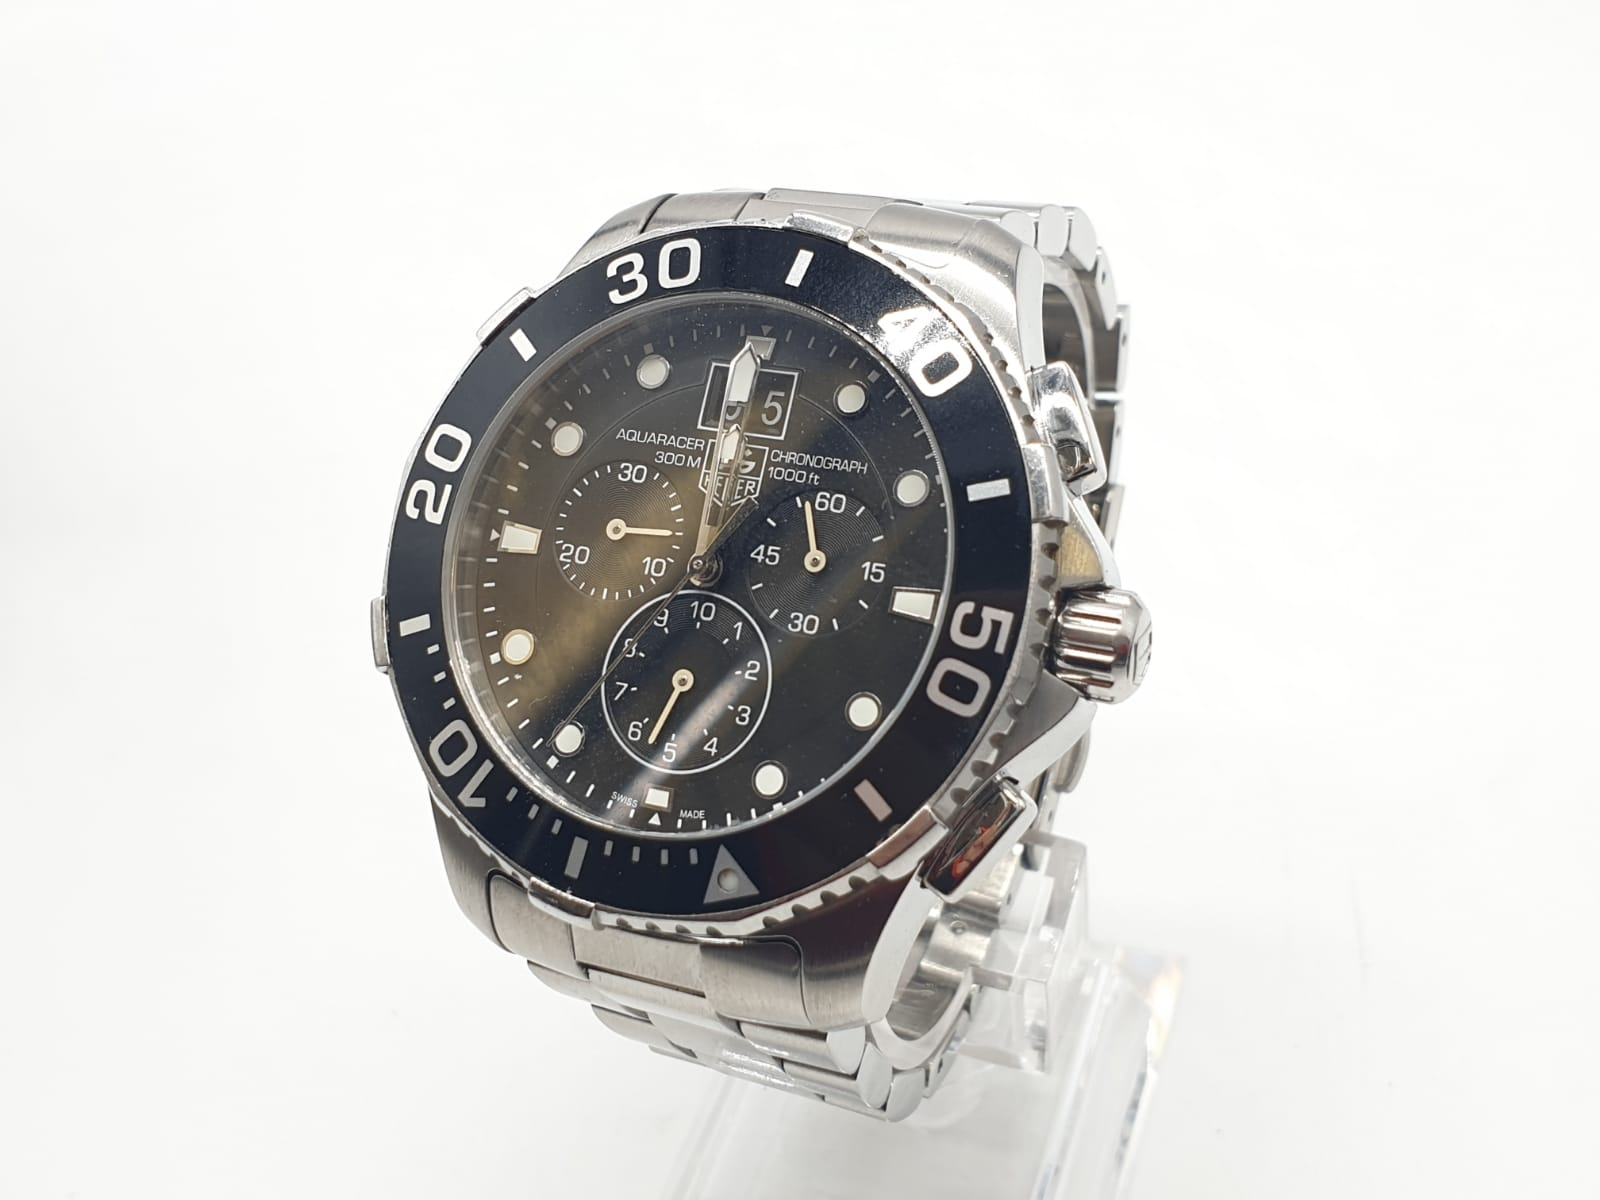 Tag Heuer gents chronograph Aquaracer watch, black face twisted bezel and steel strap, 44mm case - Image 4 of 14